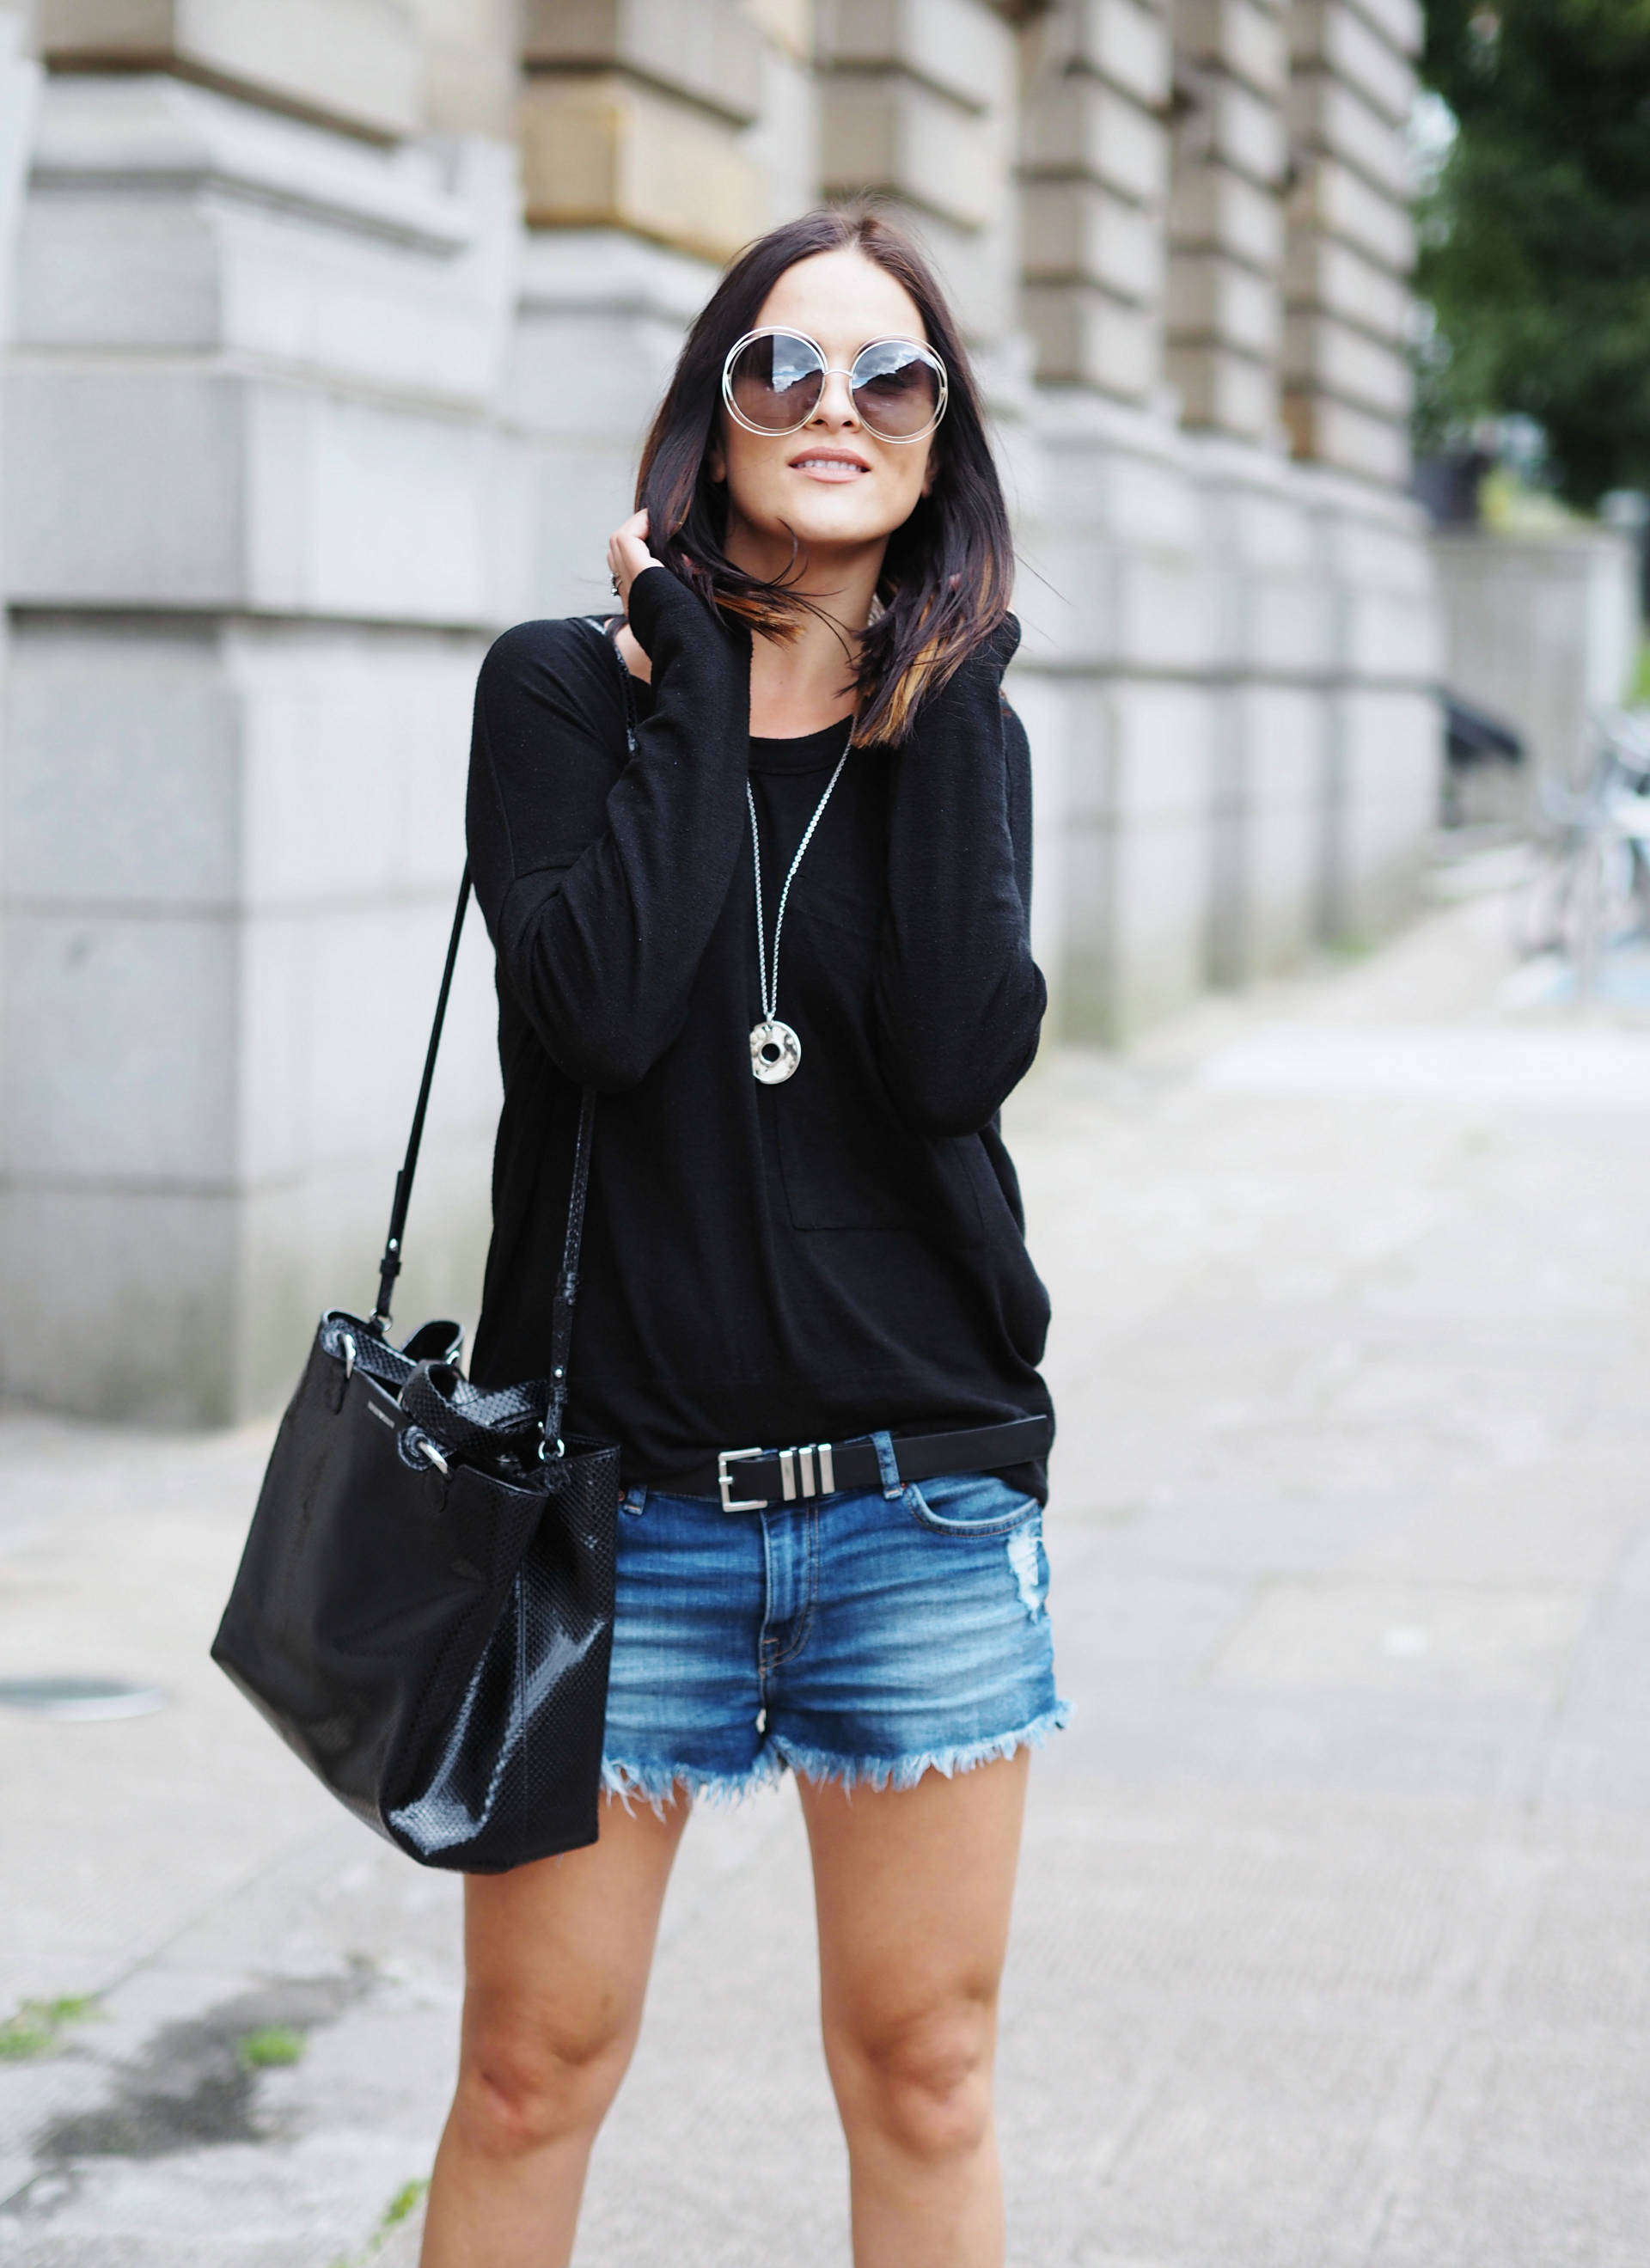 LAFOTKA UK FASHION BLOGGER CASUAL STYLE WITH COWBOY BOOTS